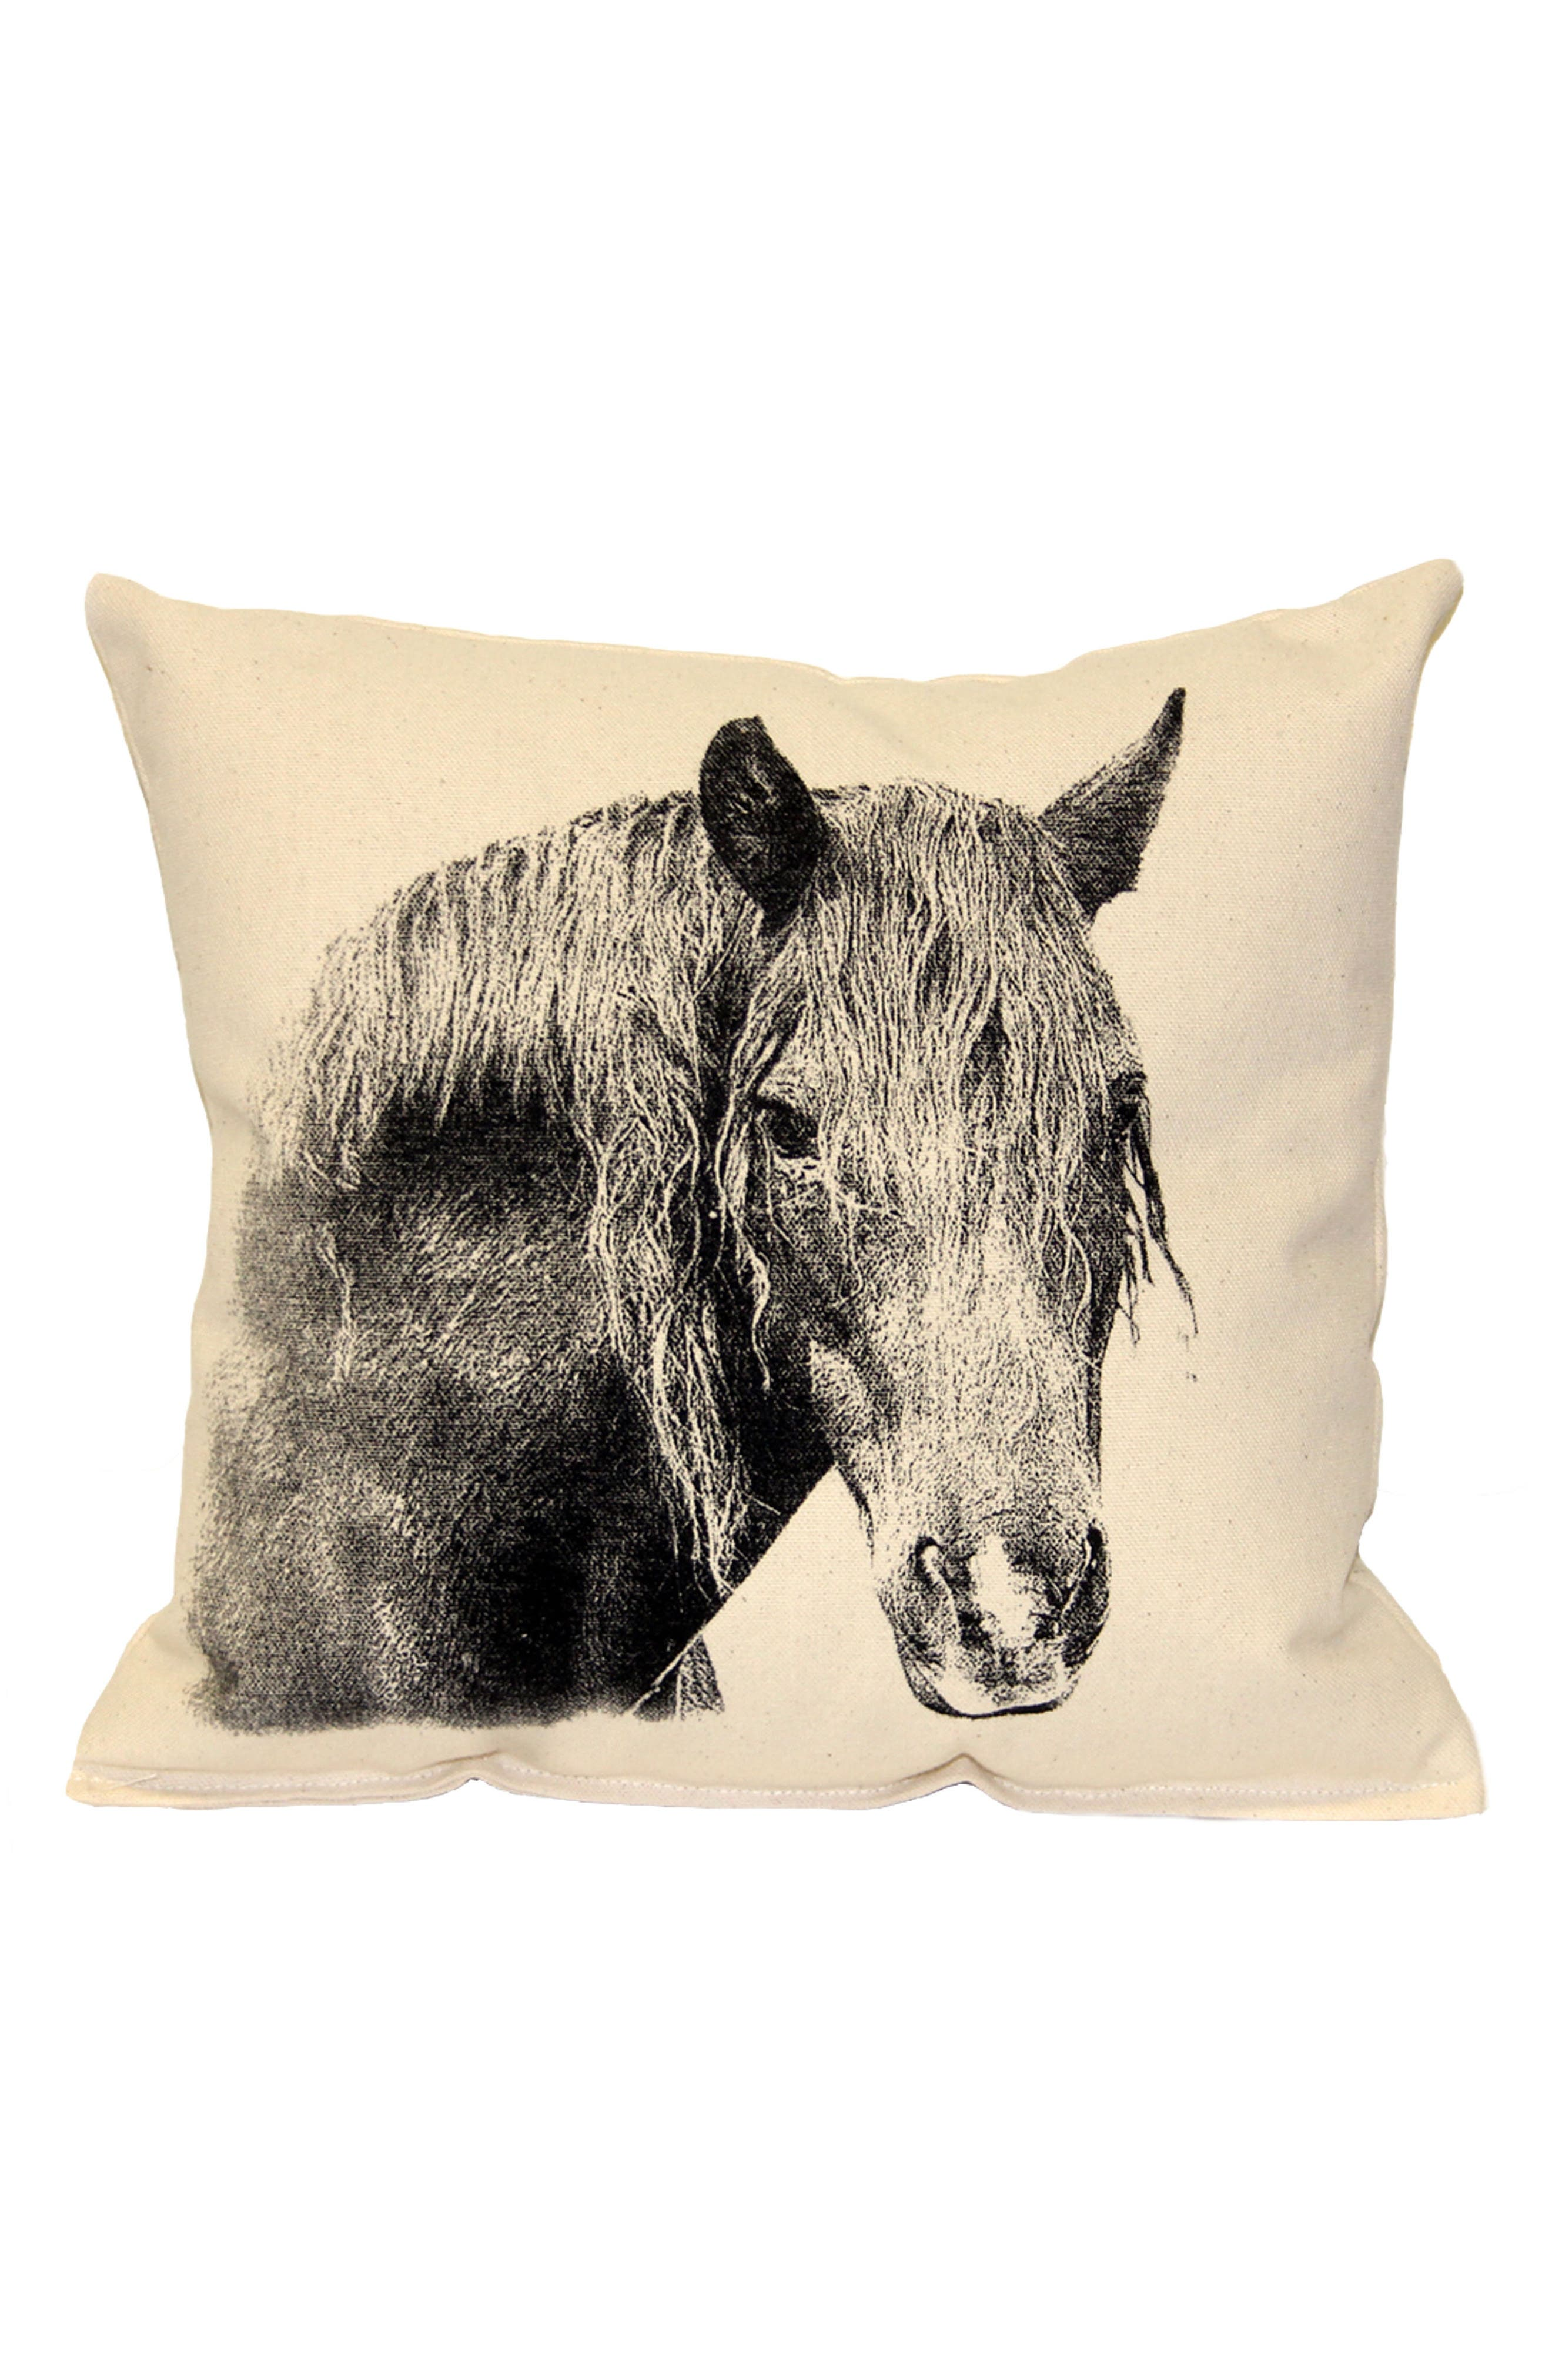 Animal Accent Pillow,                             Main thumbnail 1, color,                             250